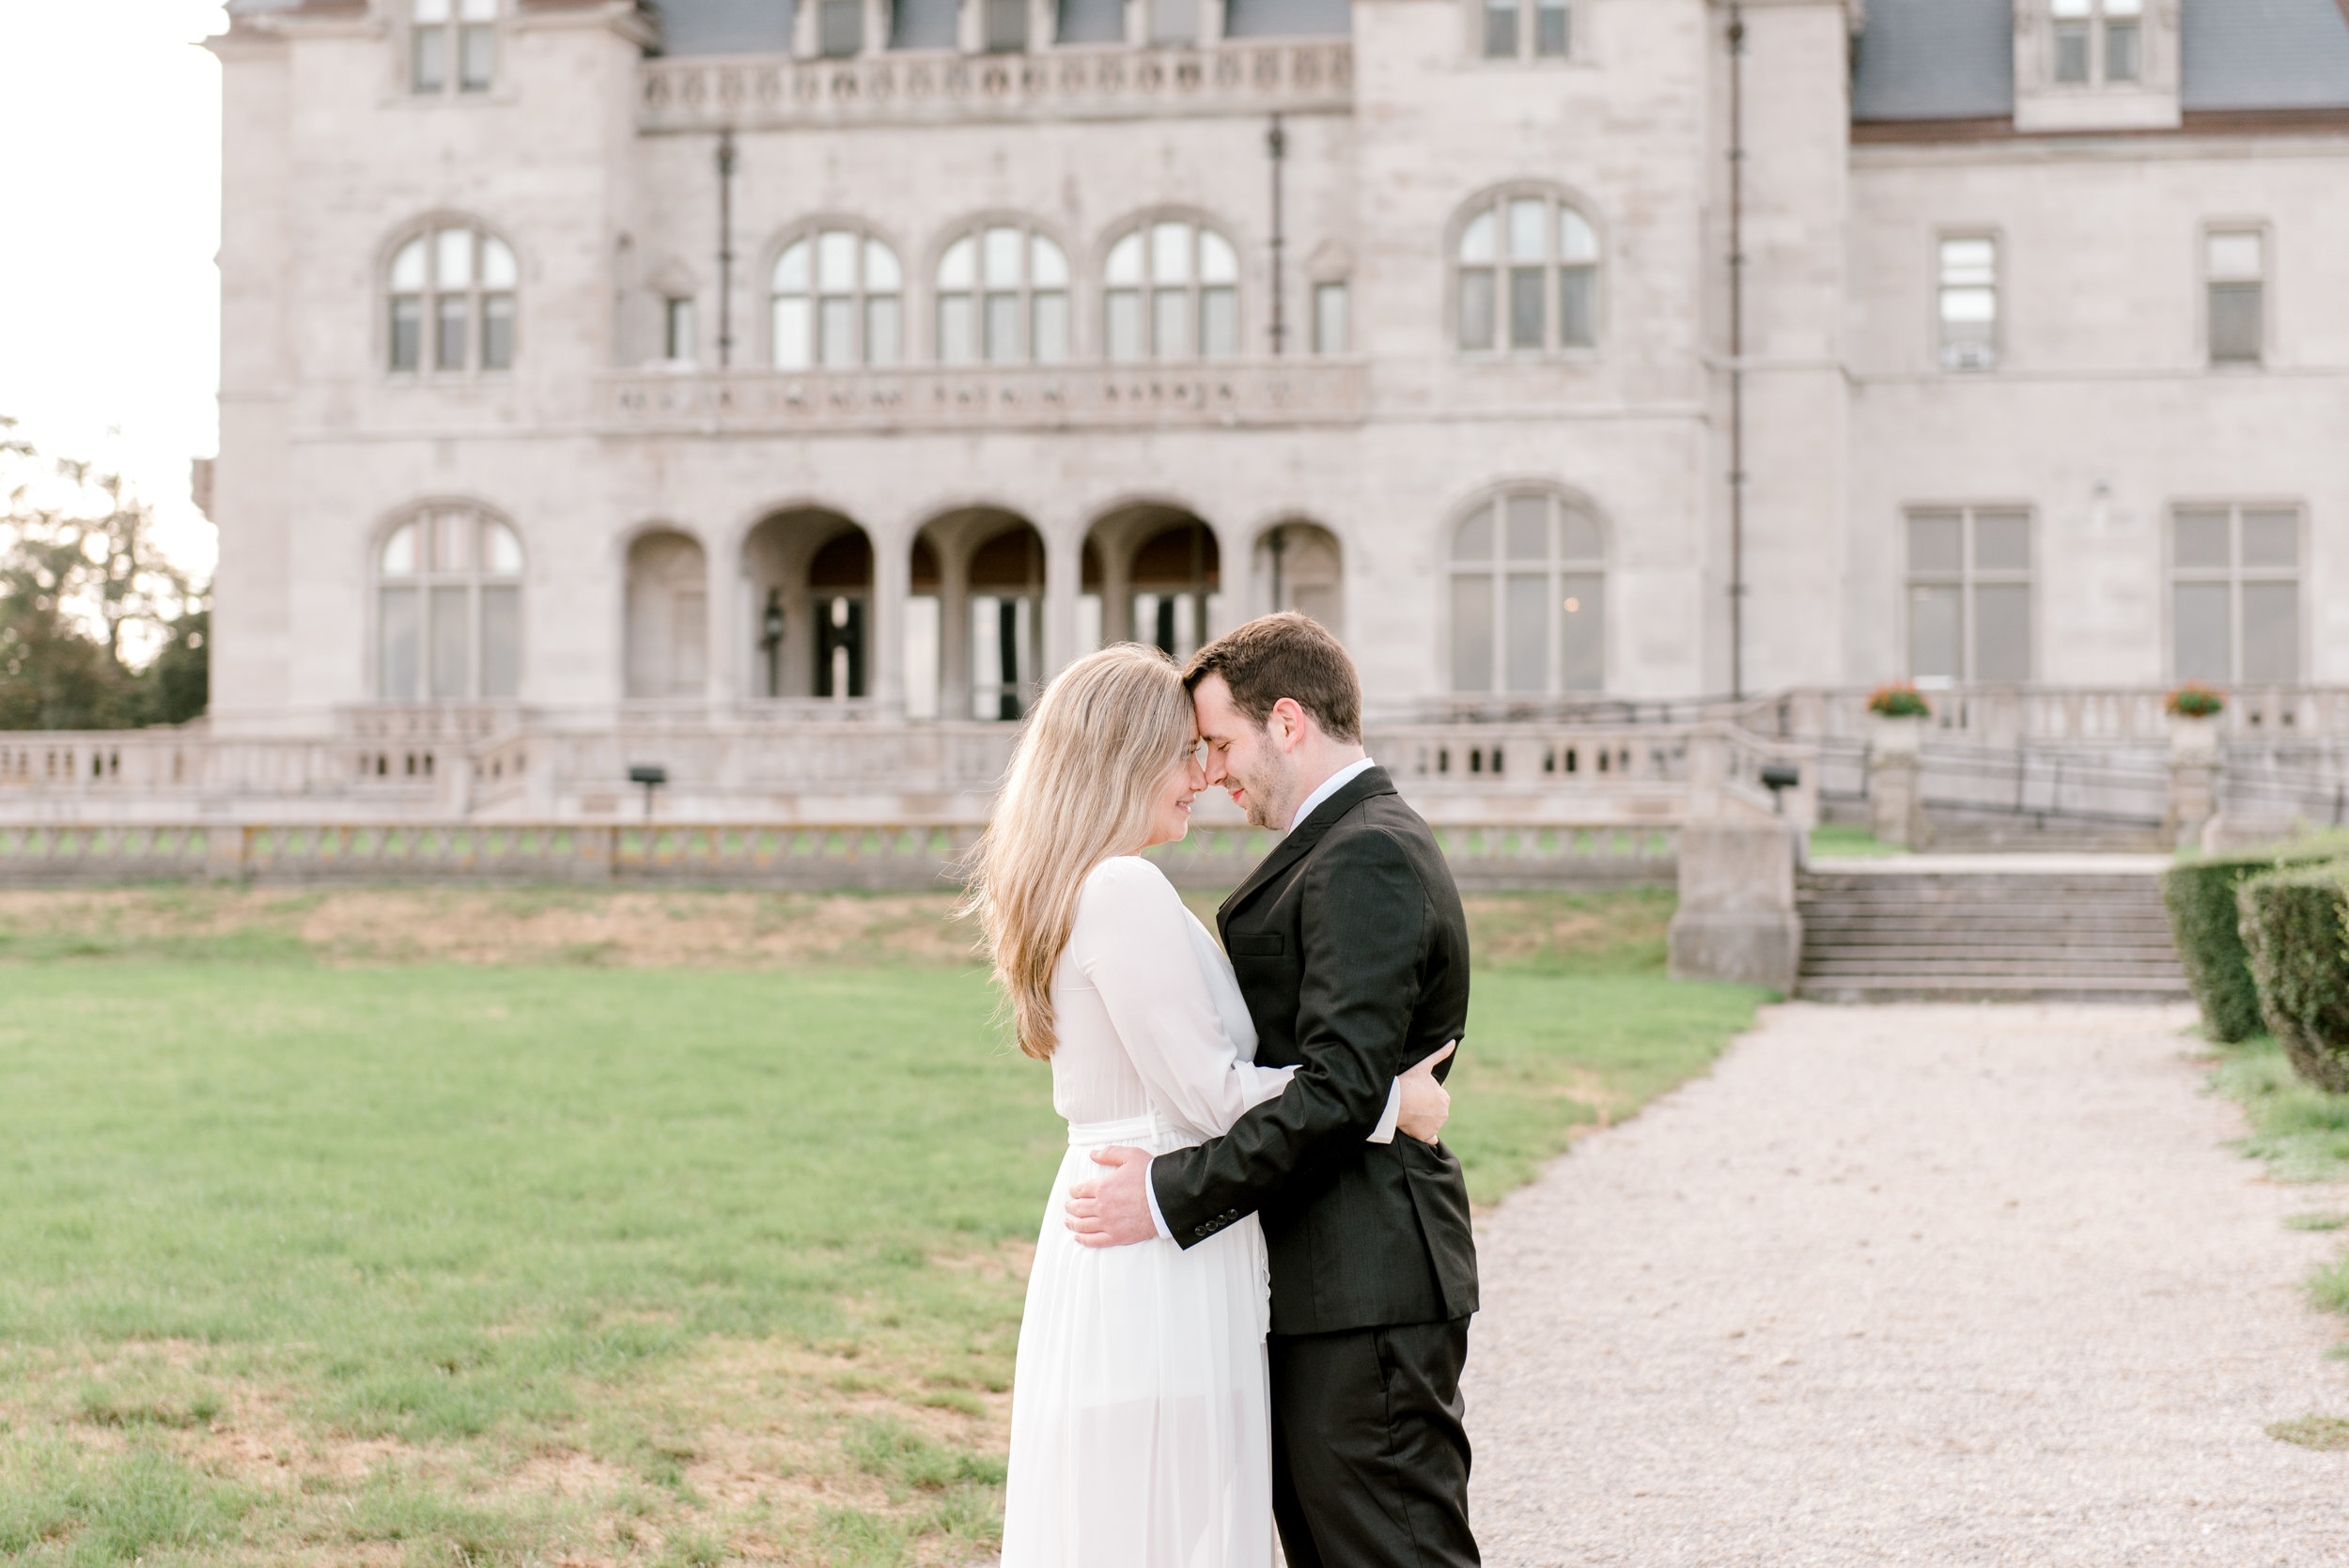 heather_and_connor_engagement-44.jpg